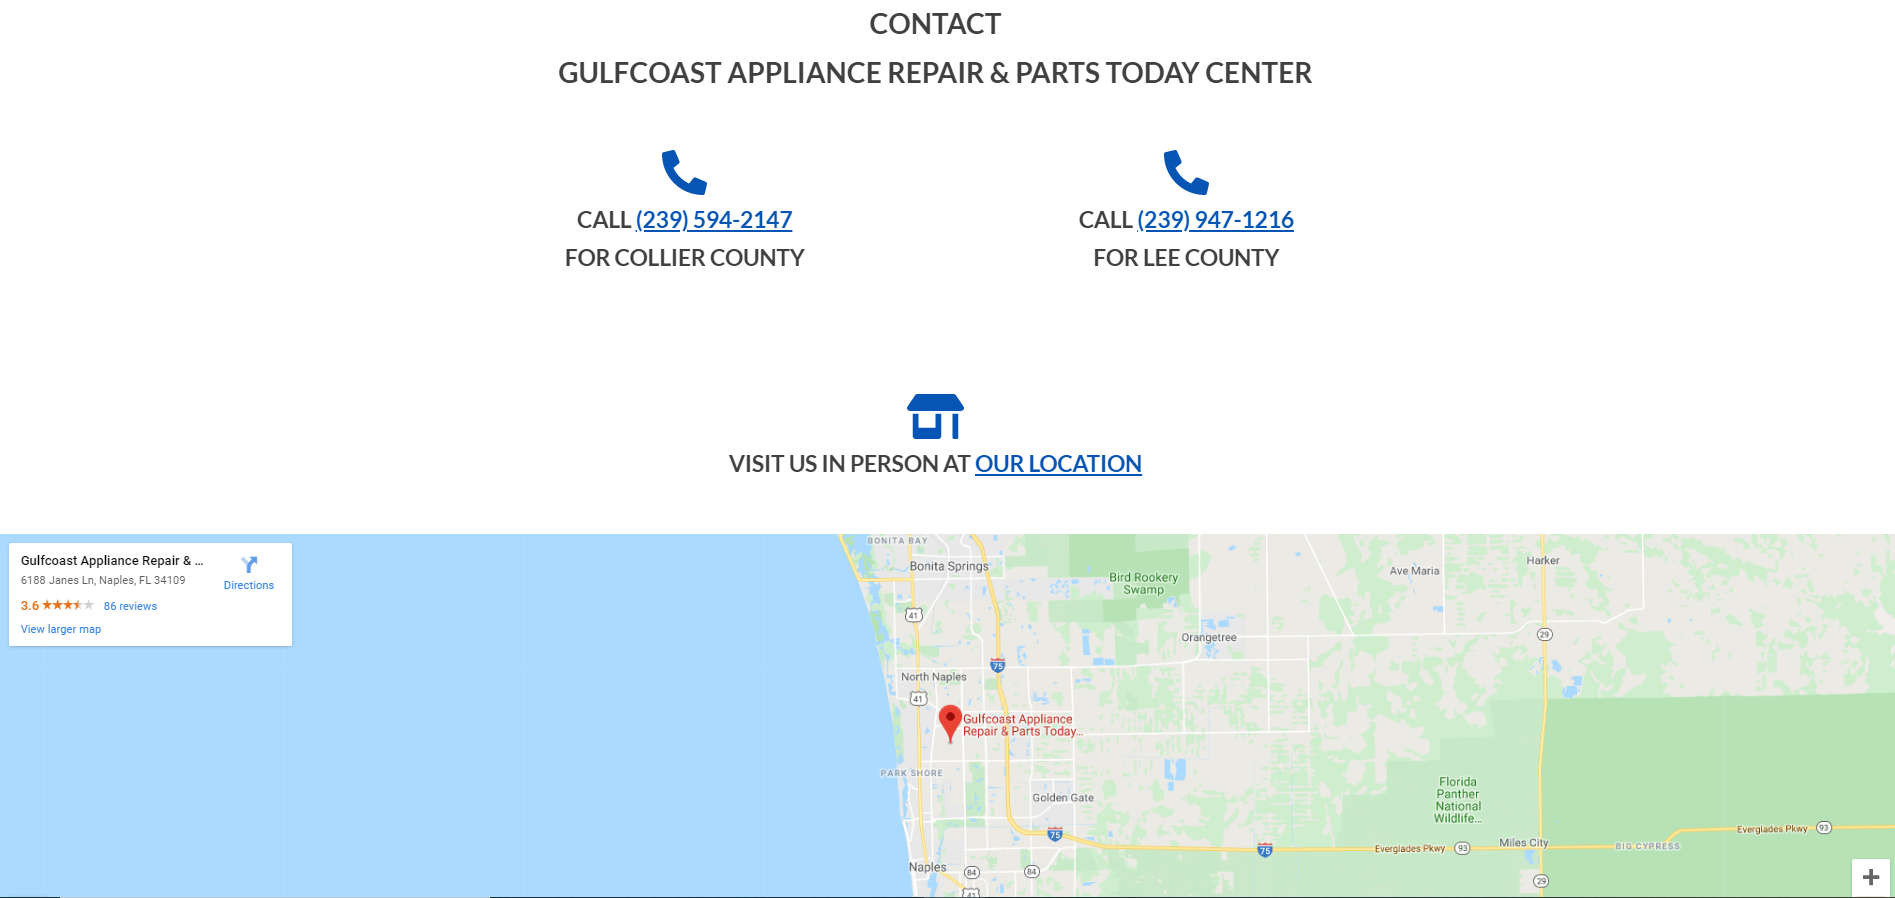 gulfcoast appliance repair - web design by alex belan screenshot